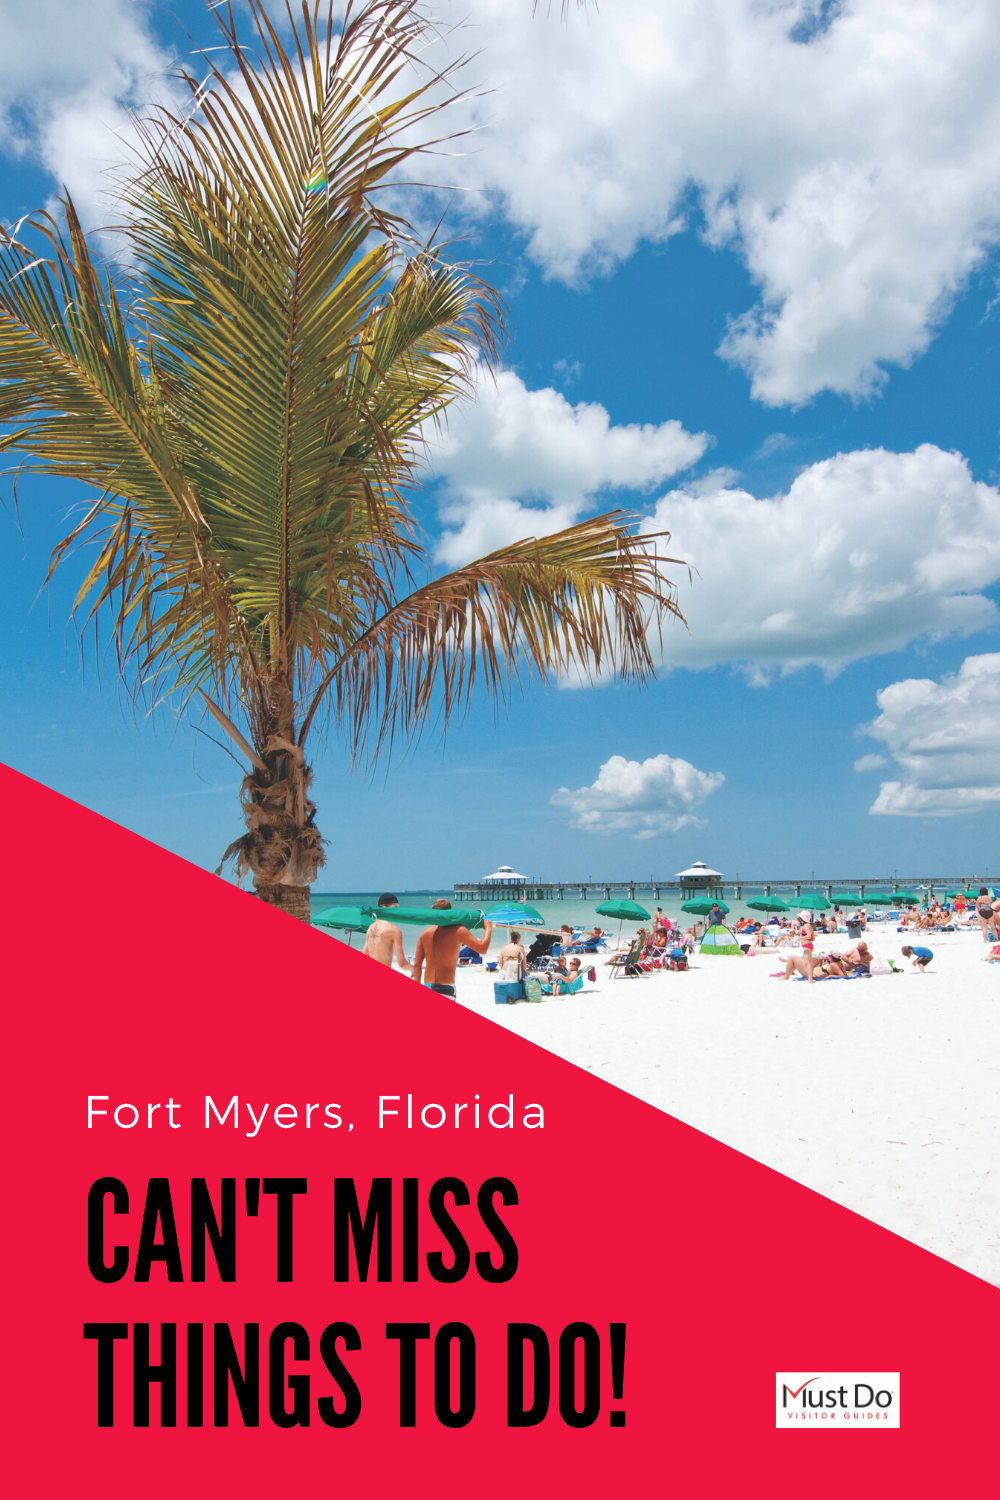 Fort Myers, Florida Can't Miss Things to Do! Add these attractions and activities to your vacation itinerary. Must Do Visitor Guides | MustDo.com